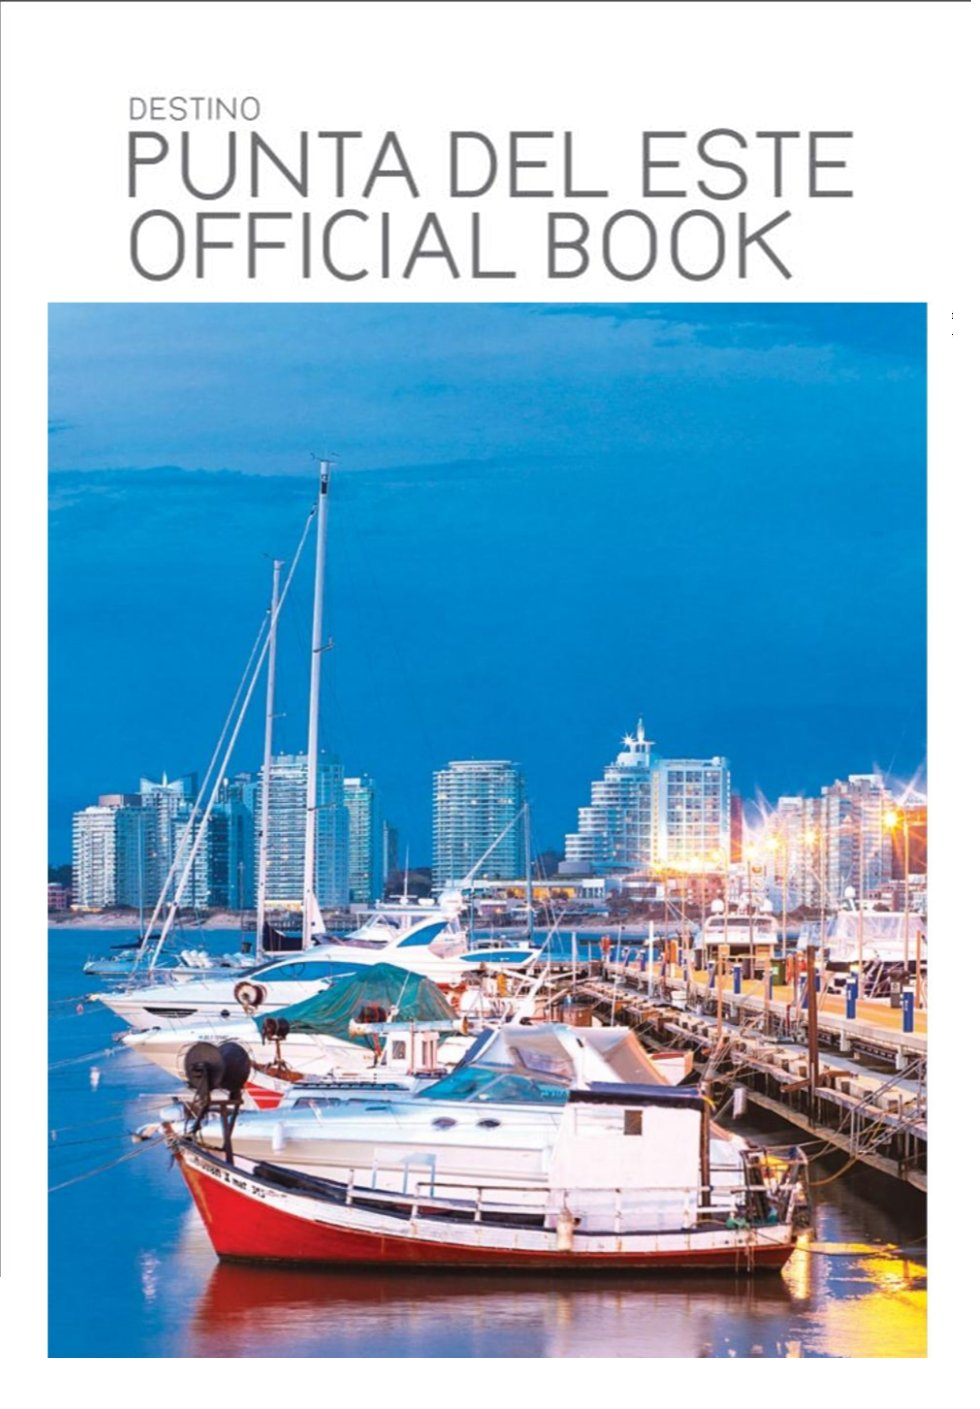 Revista Destino PUNTA DEL ESTE – Official Book.